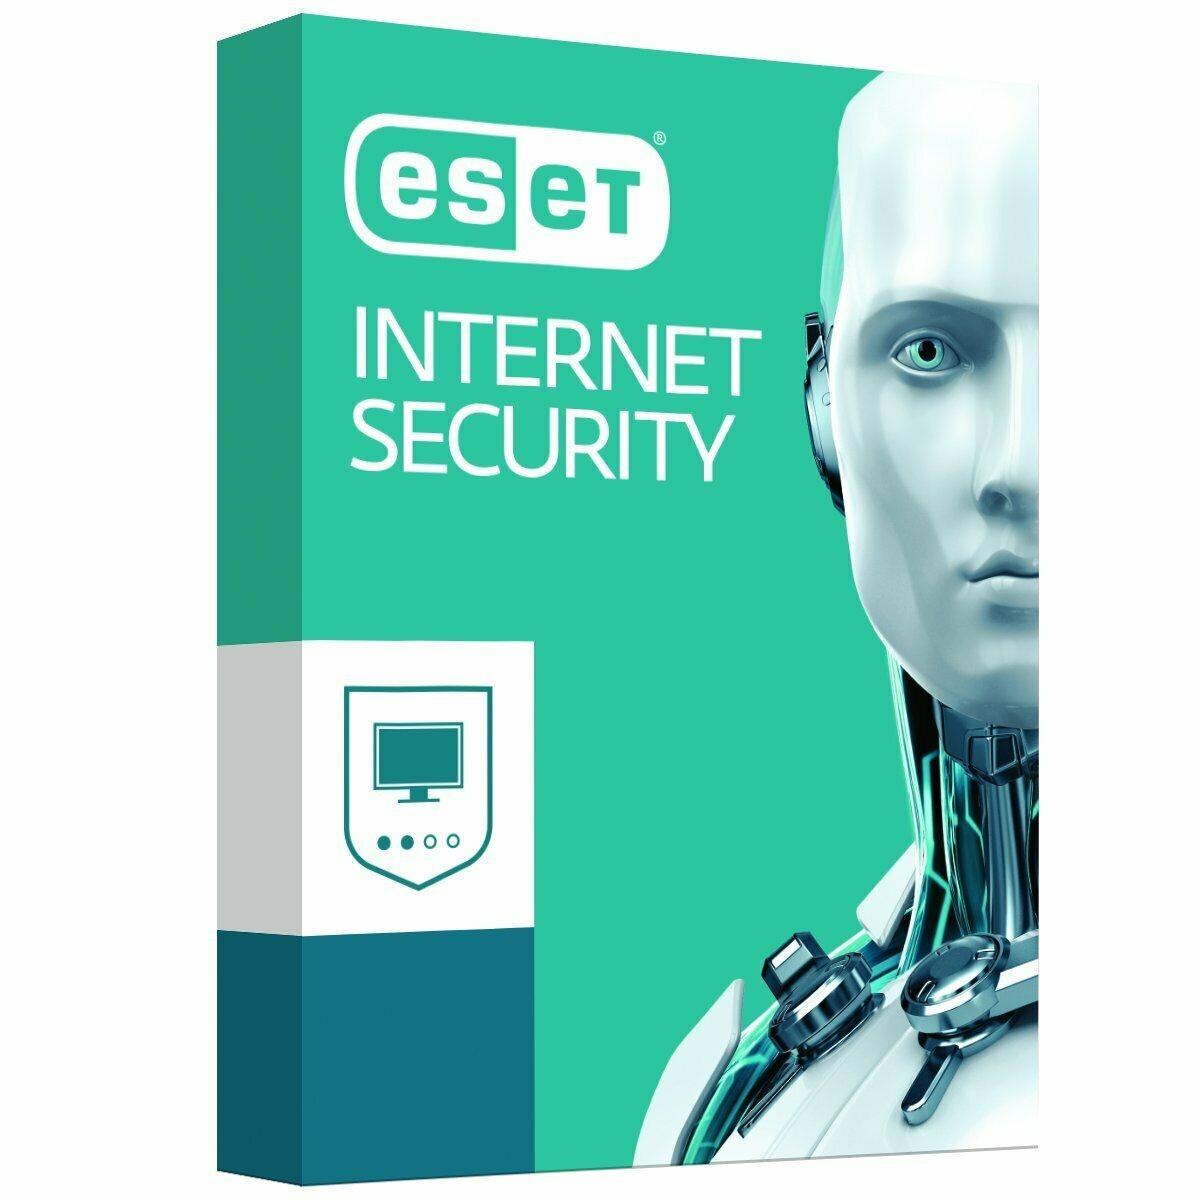 Eset Internet Security 1 PC Device 1 year License key 2019